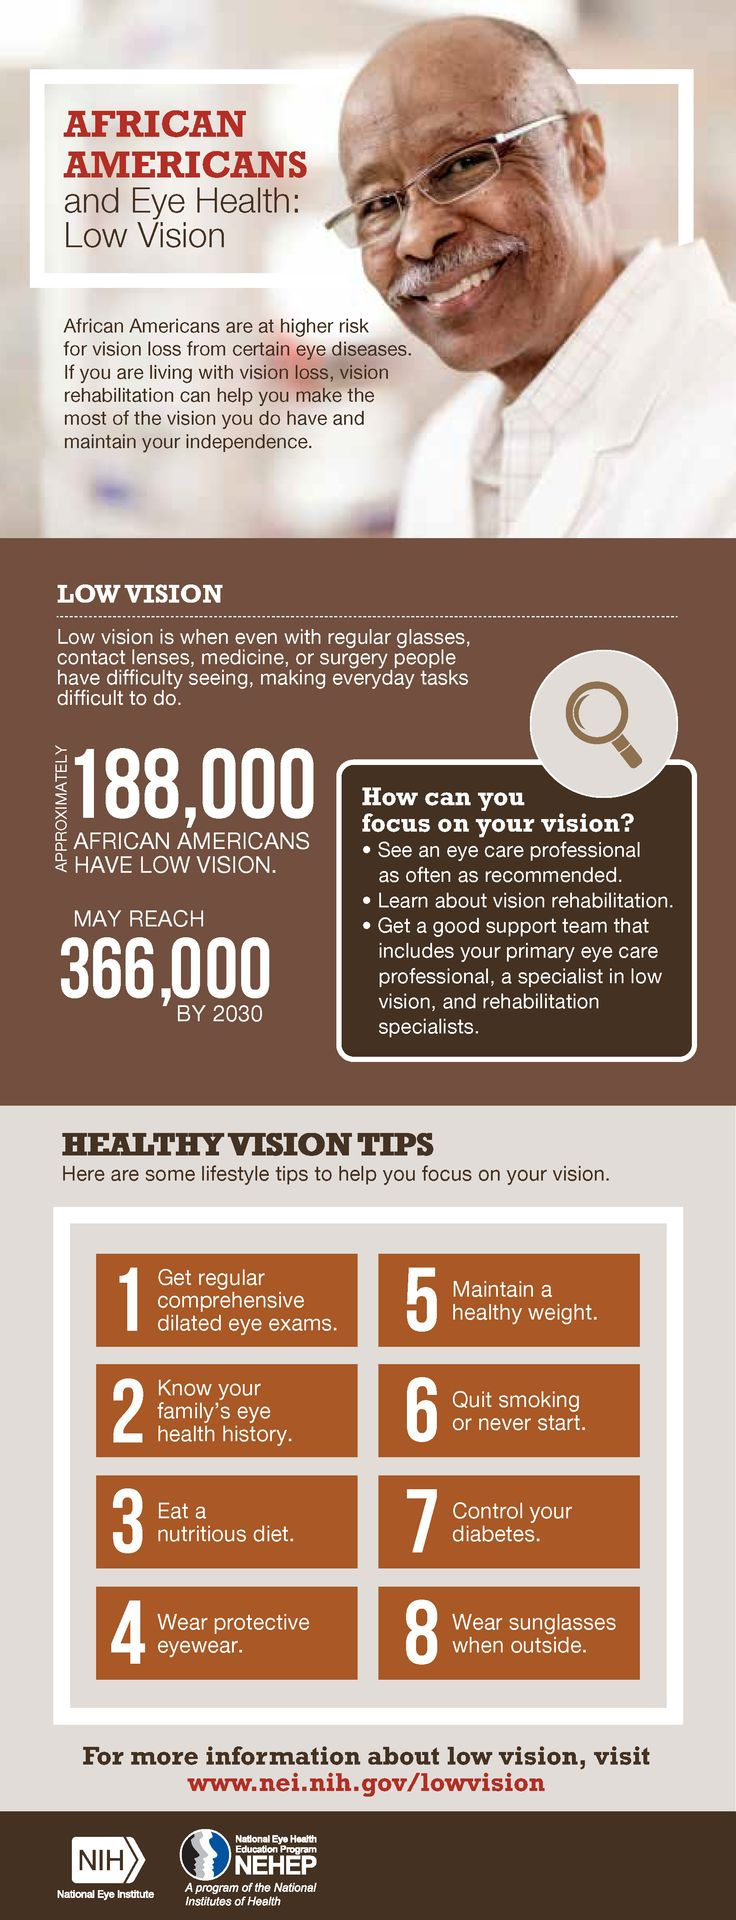 African Americans and Eye Health: Low Vision.